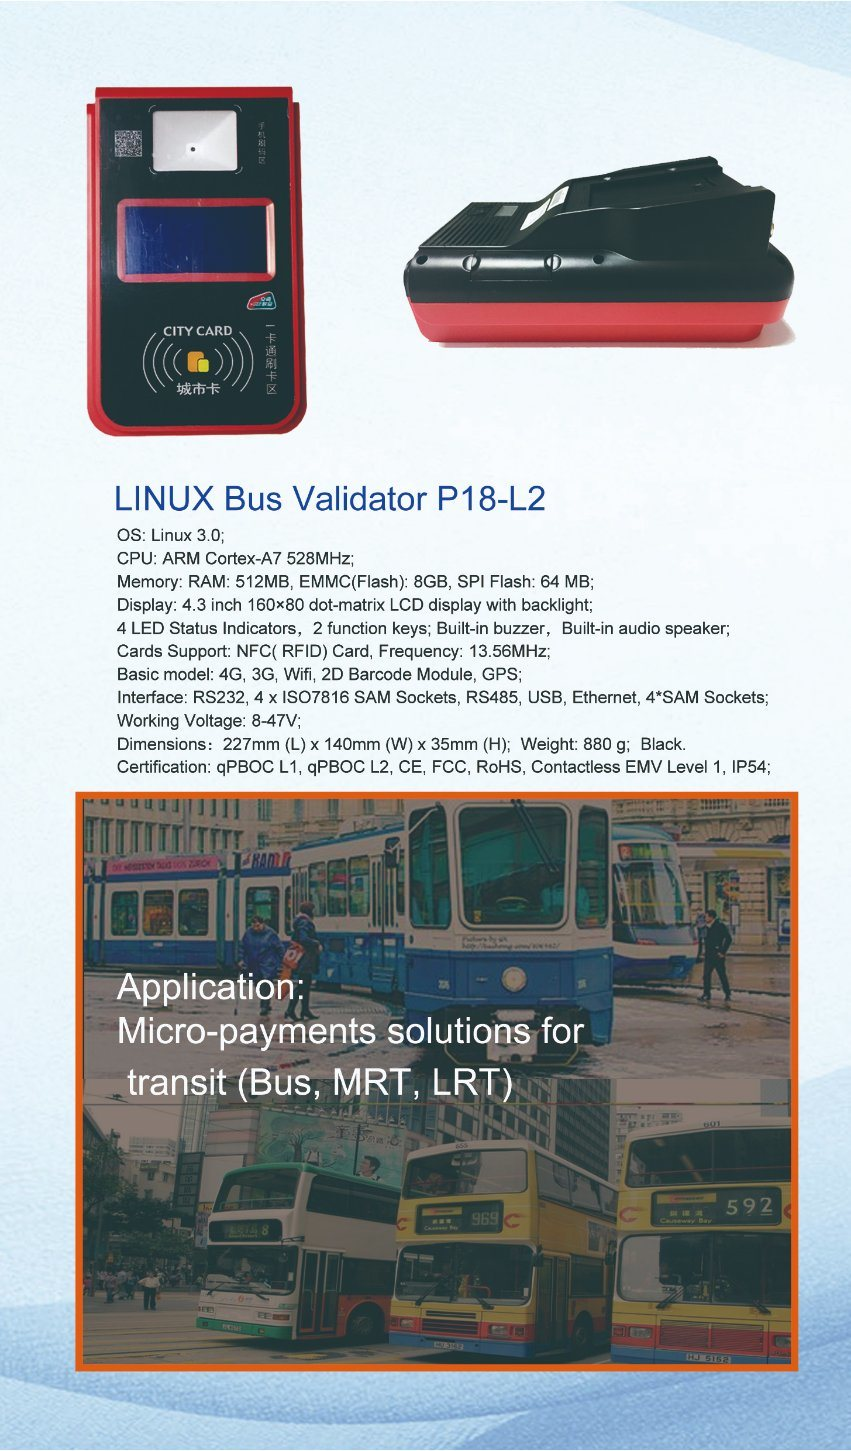 Support RFID Card Transportation GPS Ticket Card Bus Validator With 4 PSAM Slots P18-L2